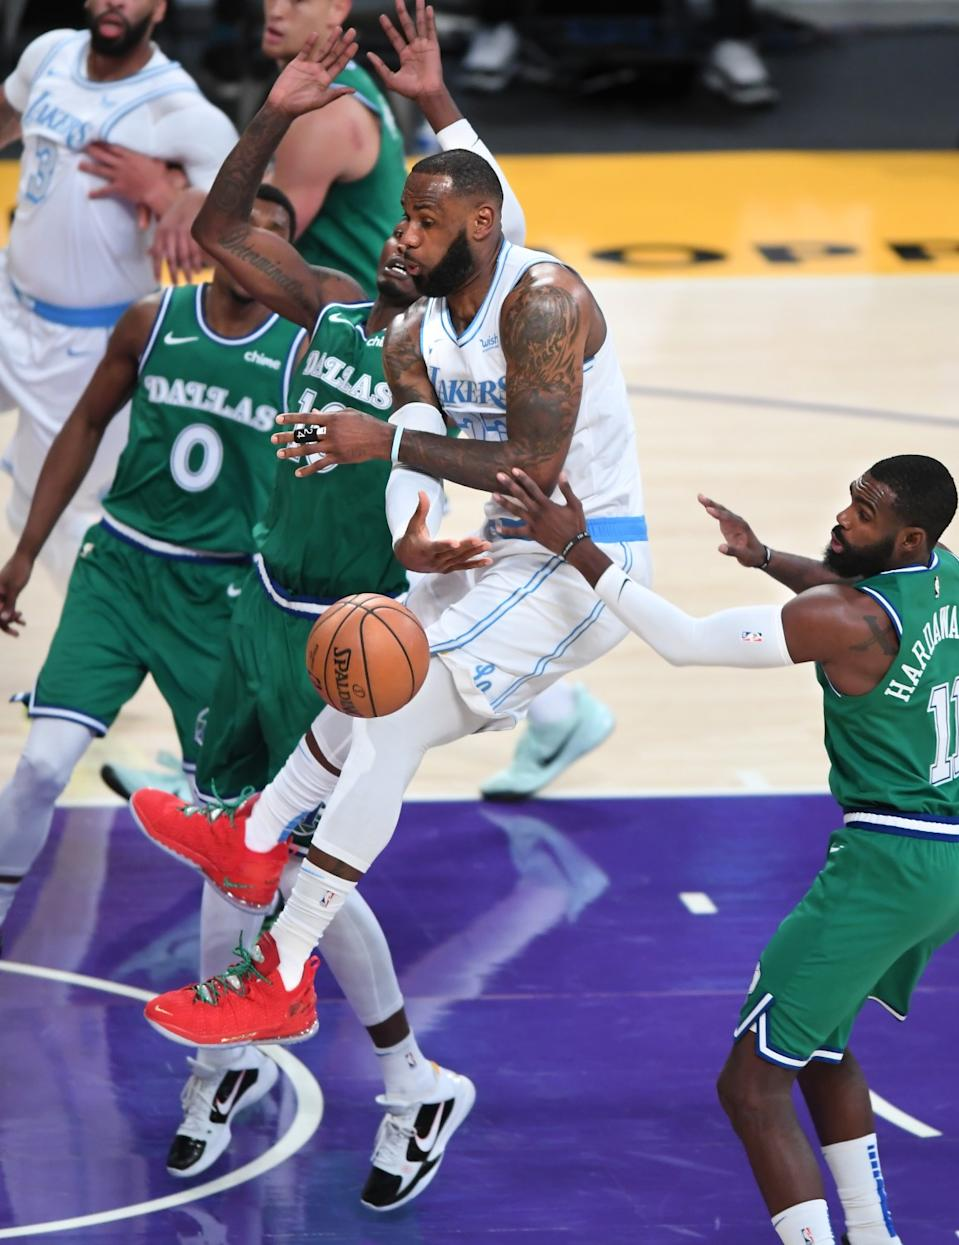 Lakers forward LeBron James flings a no-look pass against the Dallas Mavericks during the second quarter.